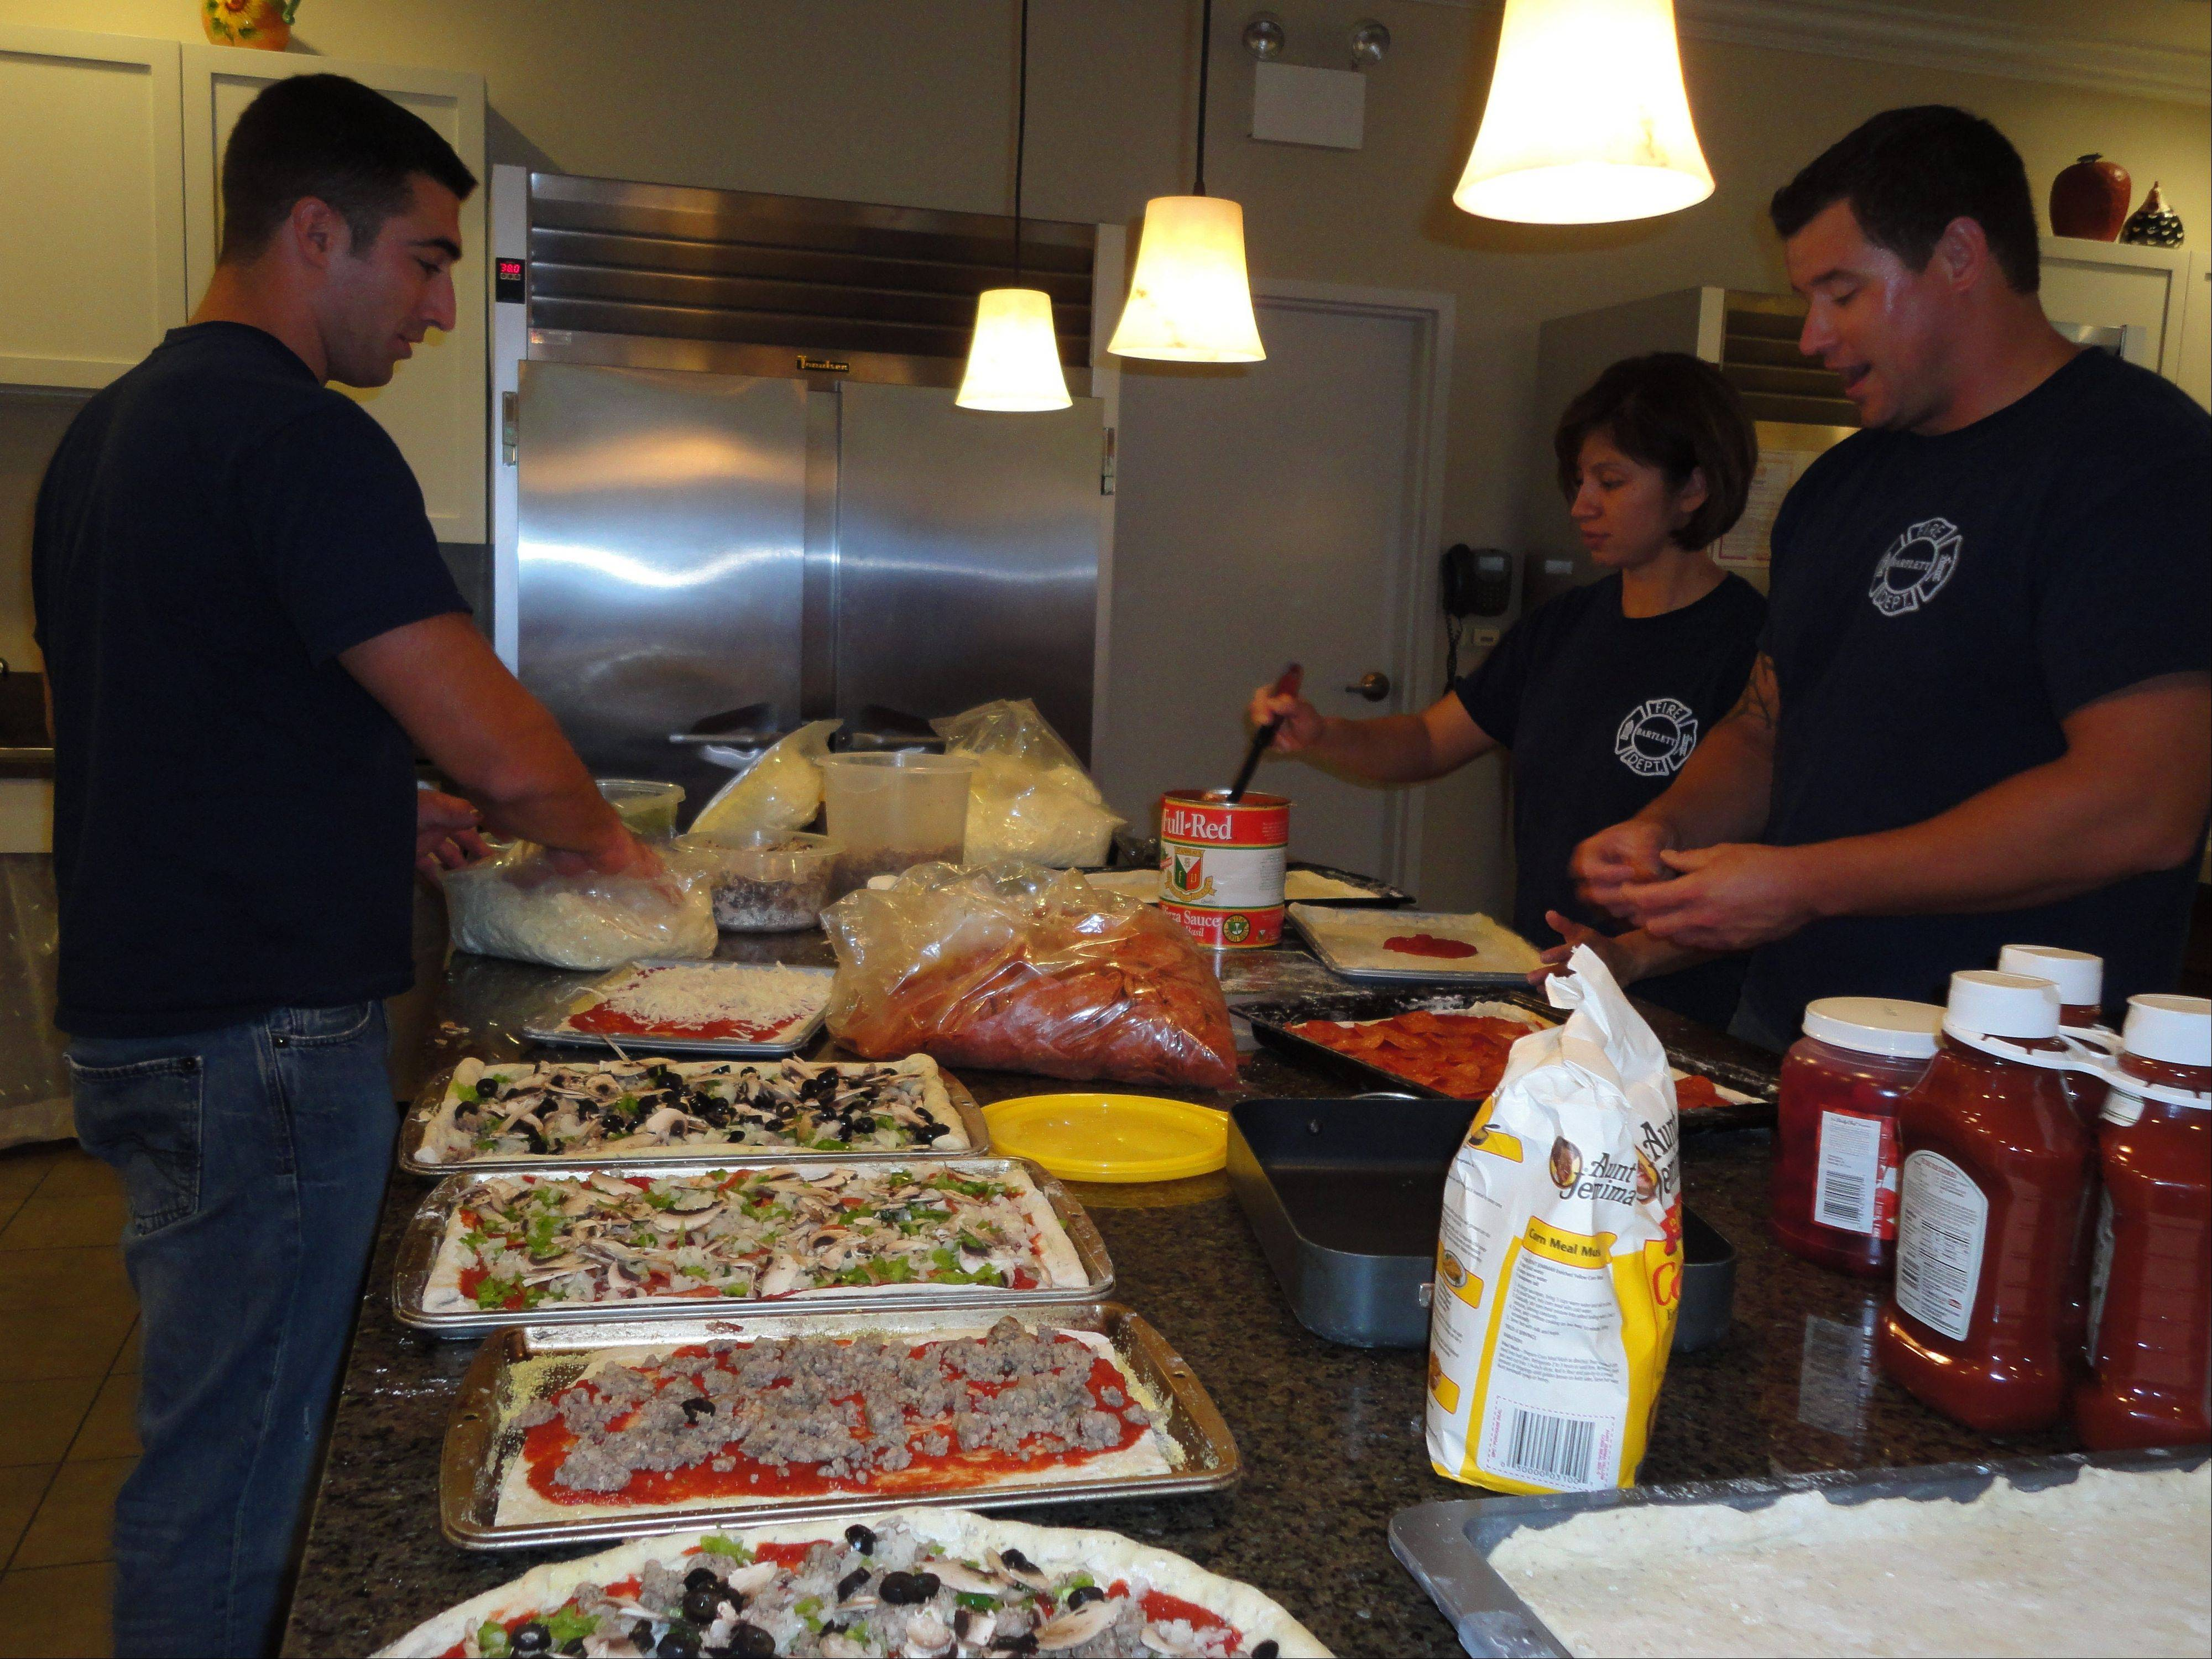 Members of the Bartlett Fire Protection District prepare a meal for the families staying at the Ronald McDonald House at the University of Chicago Comer Children's Hospital.